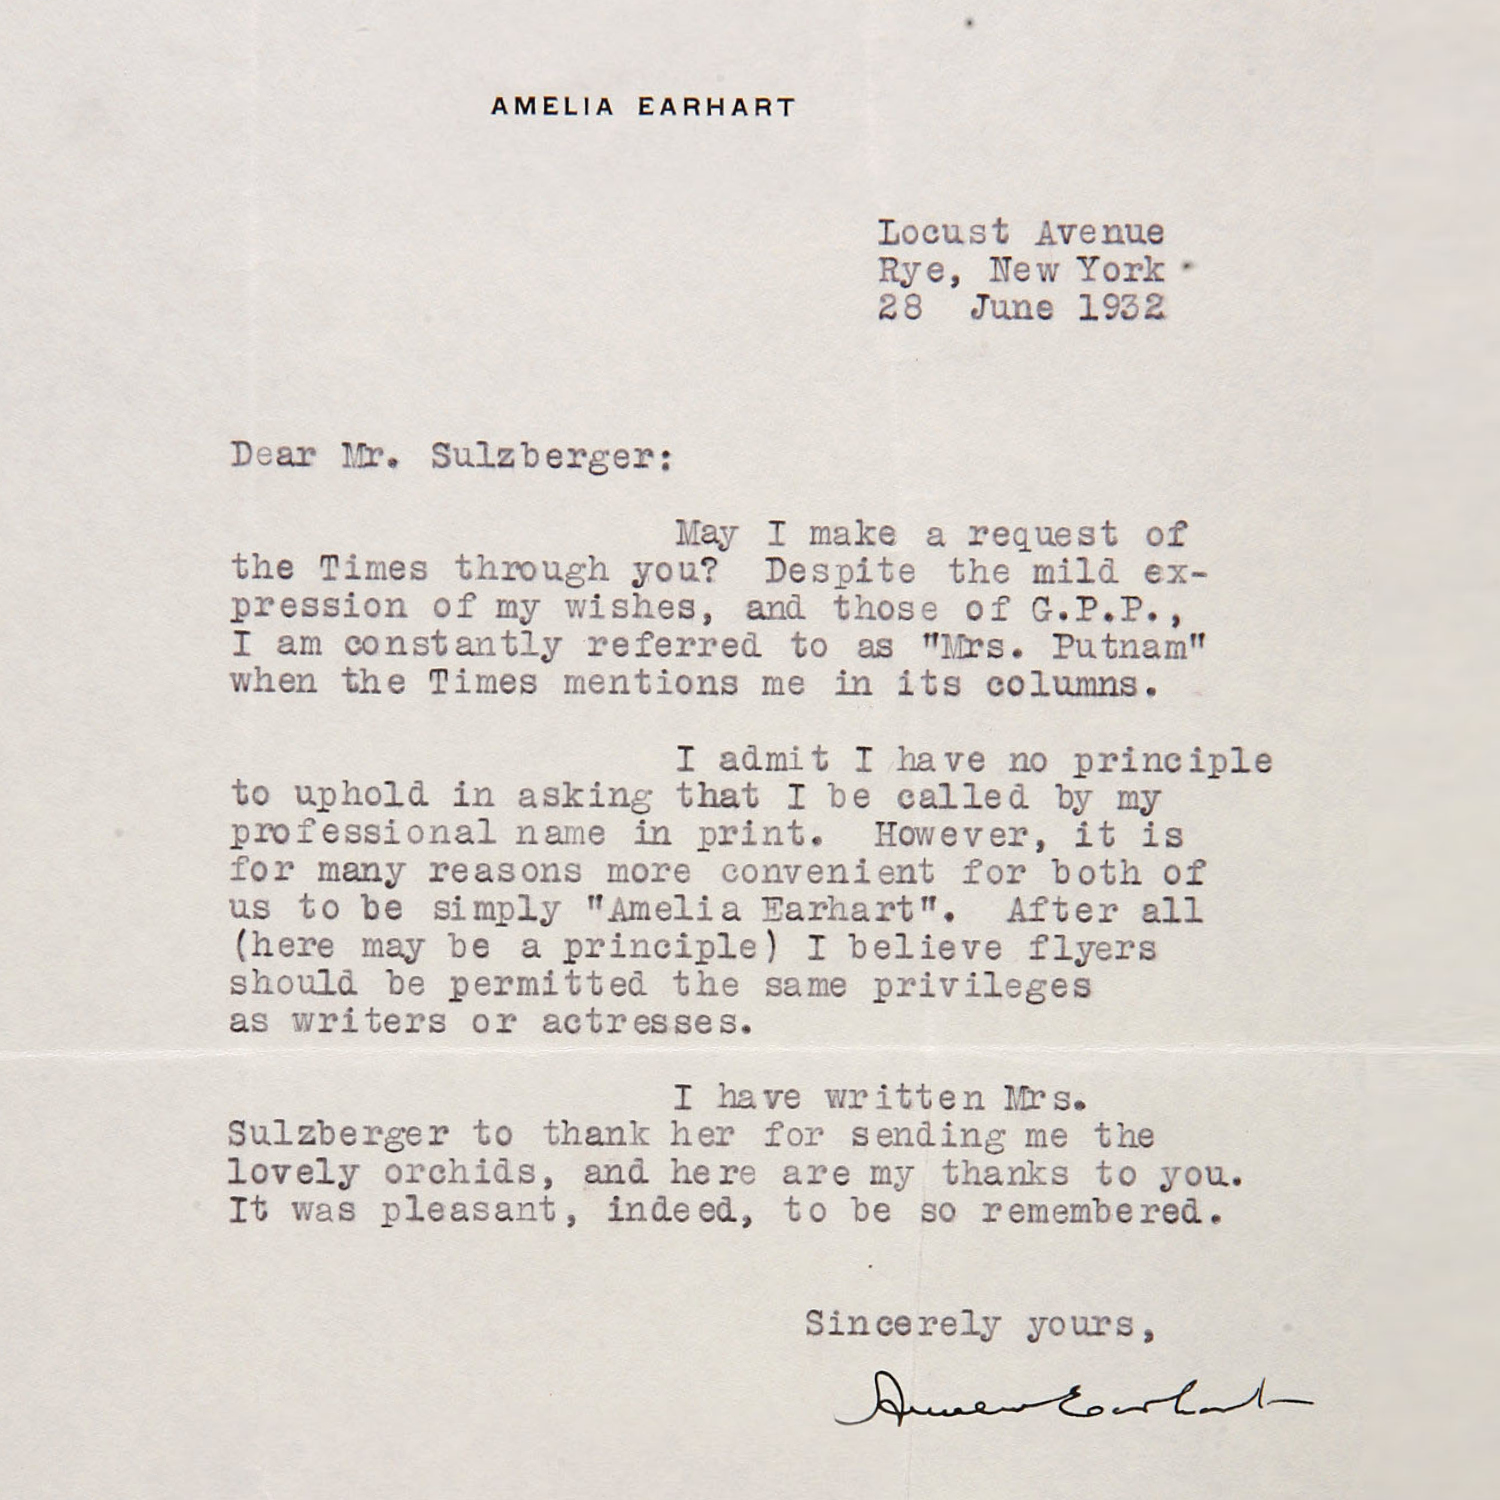 Amelia Earhart's letter to the New York Times